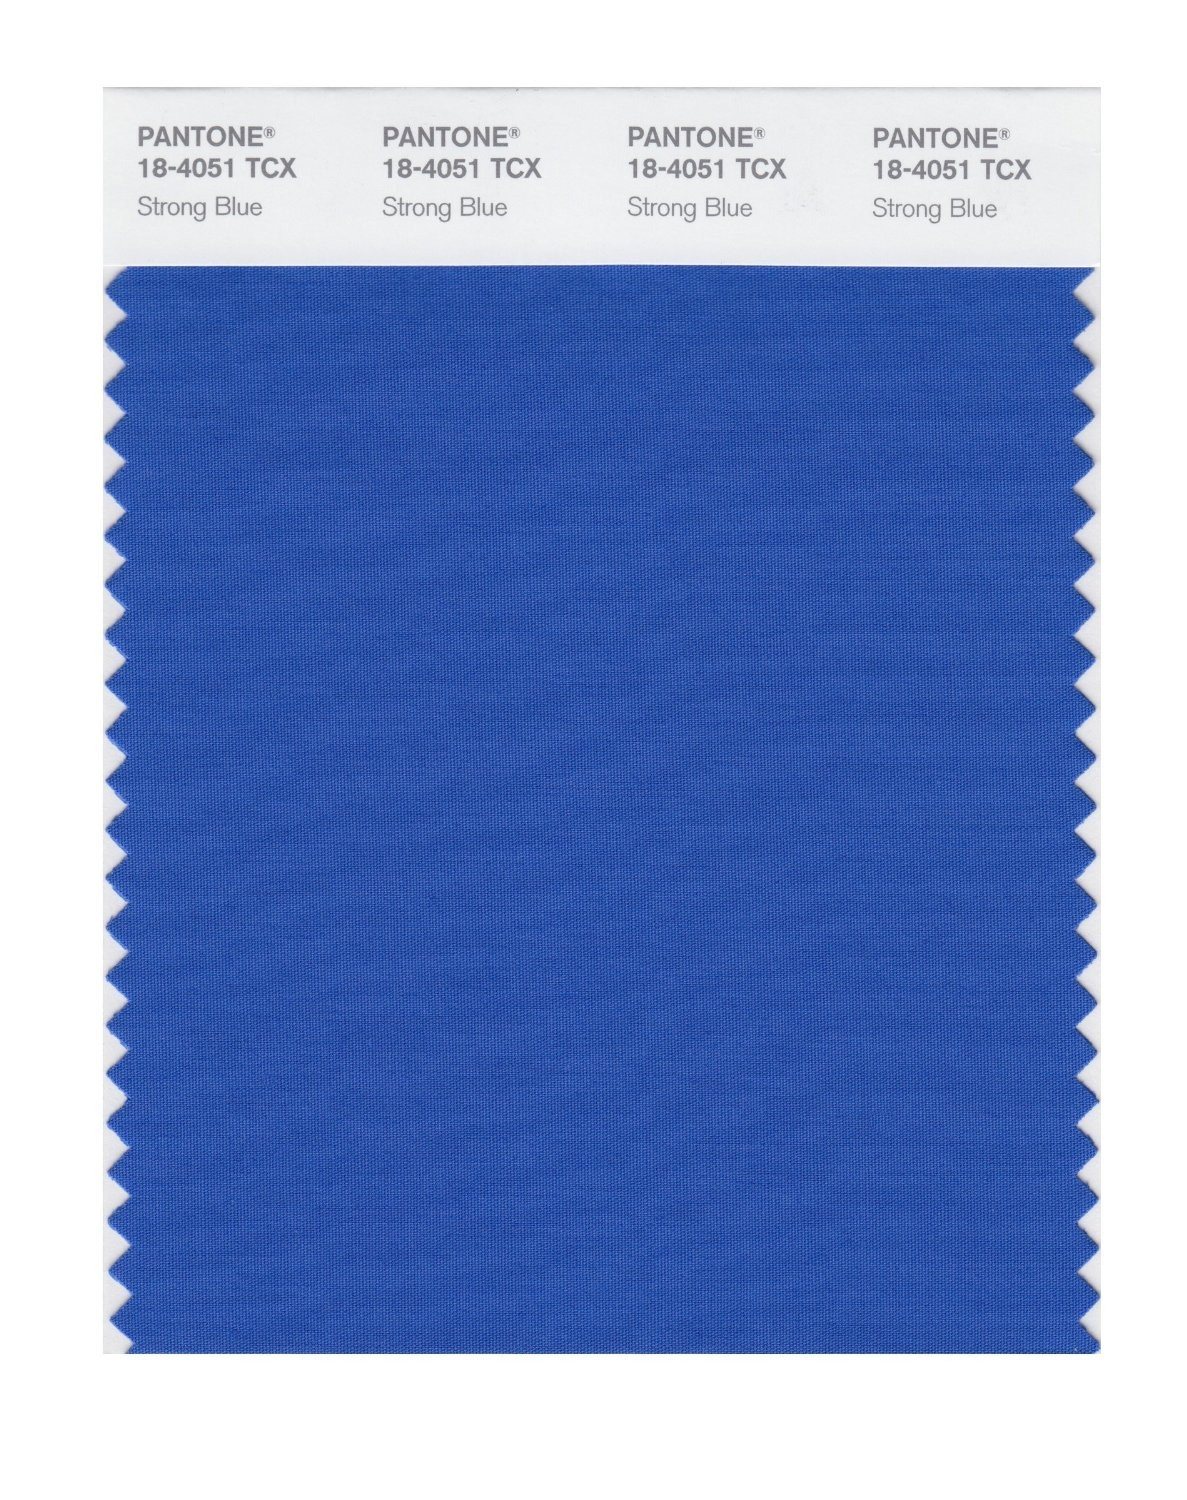 Pantone 18-4051 TCX Swatch Card Strong Blue